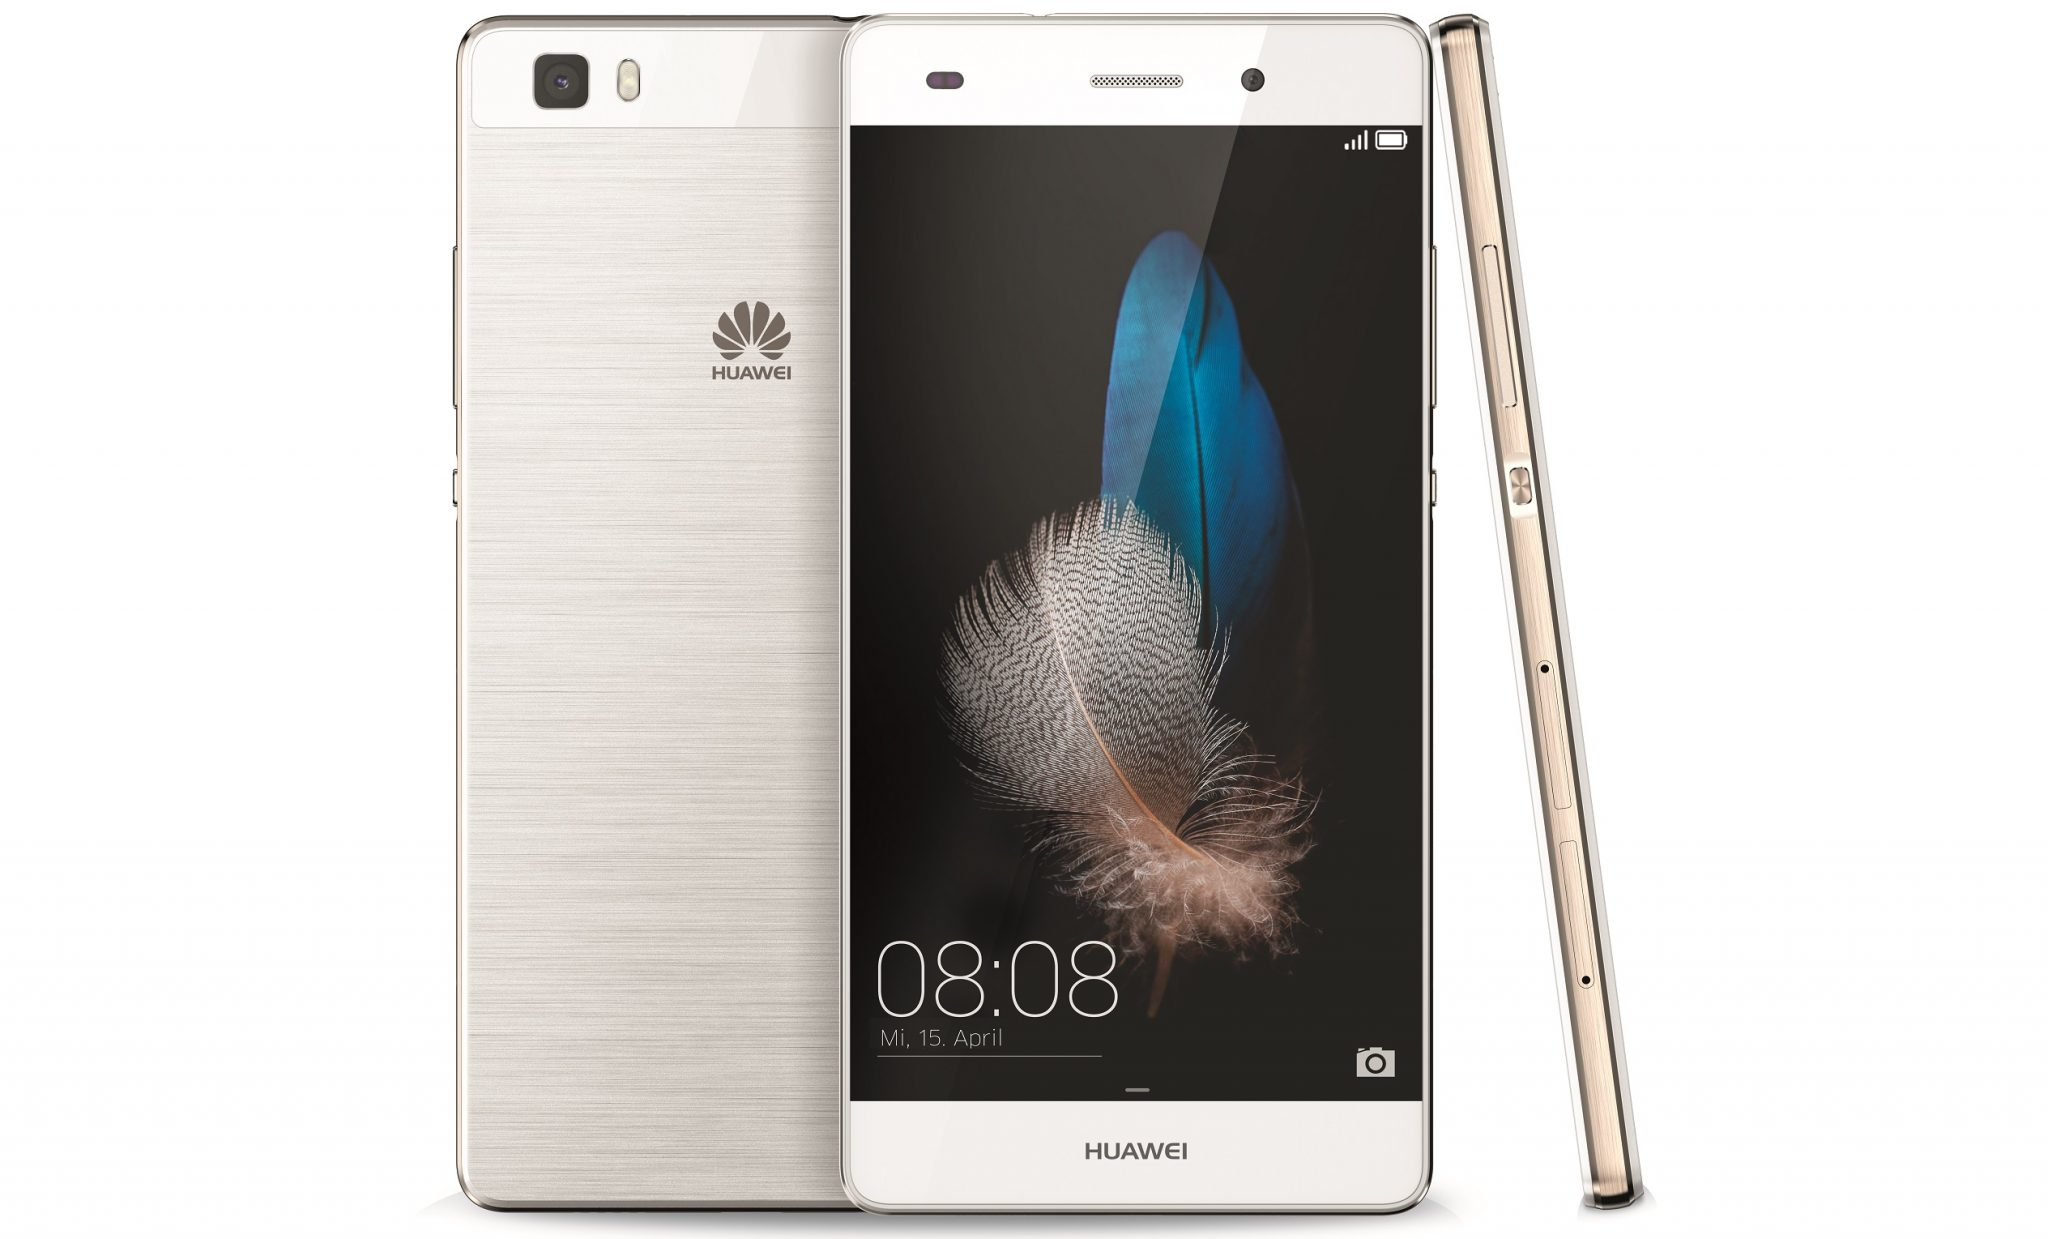 Huawei P8 Lite – Reasonable in Price, Better in Design